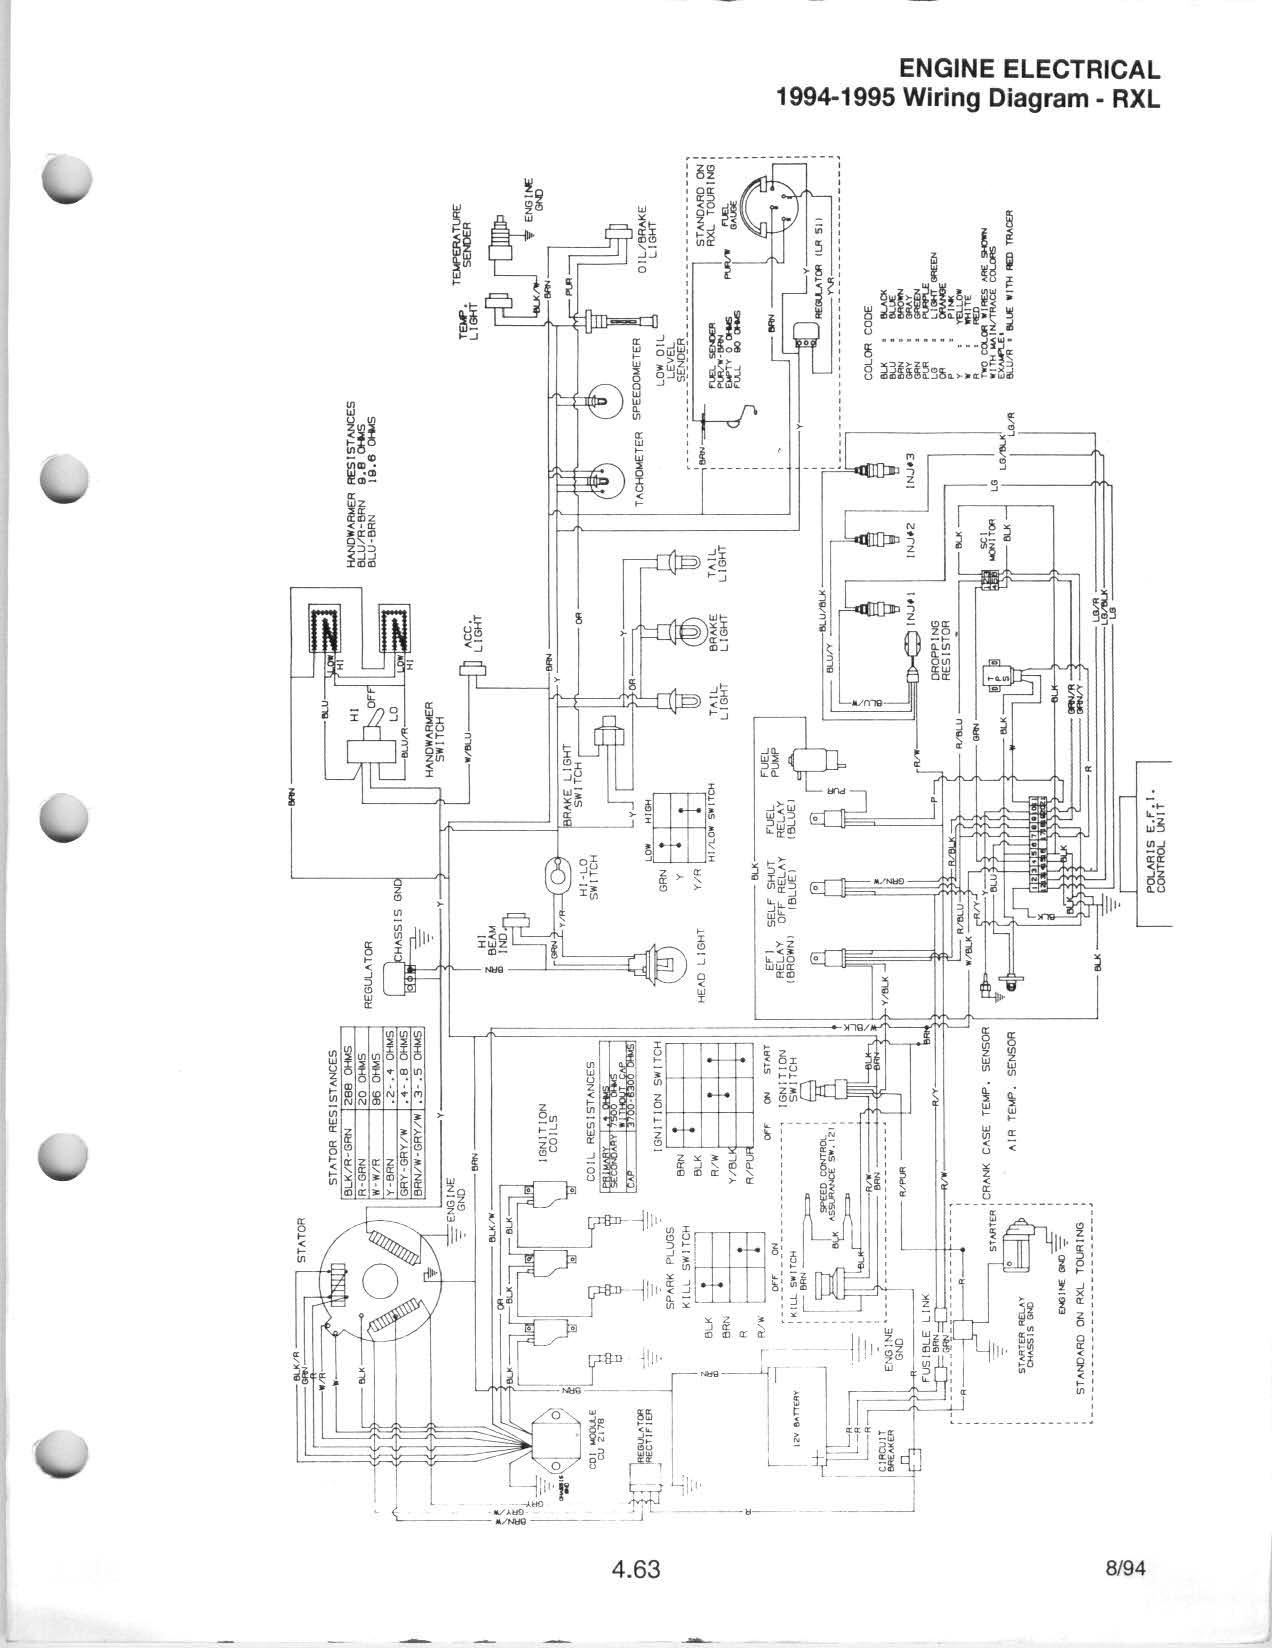 polaris ranger fuel pump wiring diagram collection polaris ranger ev wiring diagram 2011 polaris ranger xp wiring diagram #12